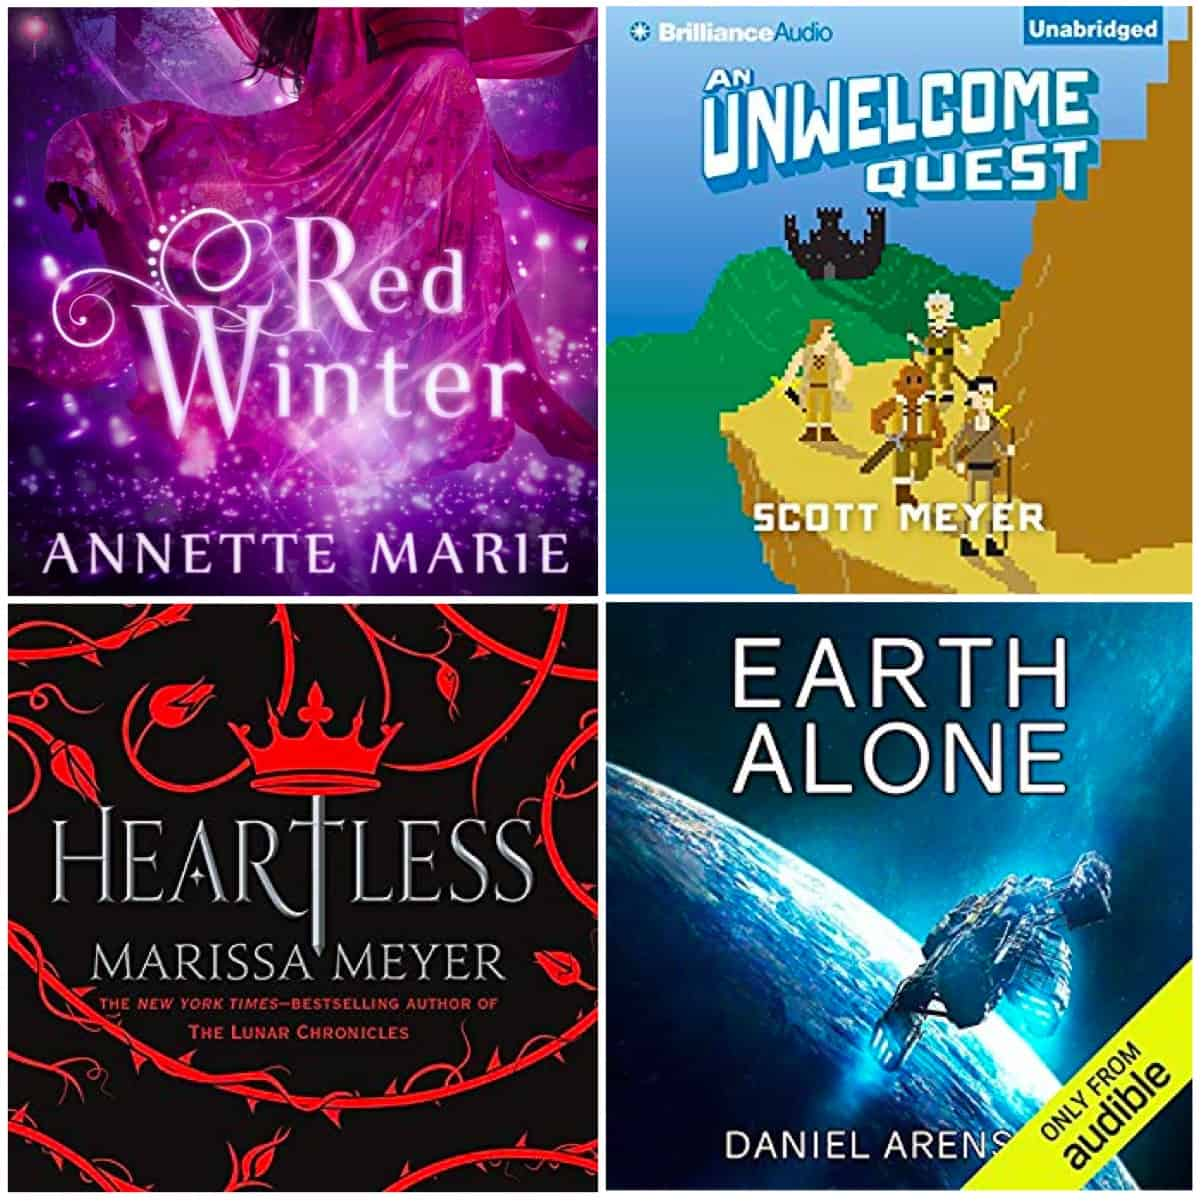 This month we have books by Annette Marie, Scott Meyer, Marissa Meyer, and Daniel Arenson. Lots read and listened to!